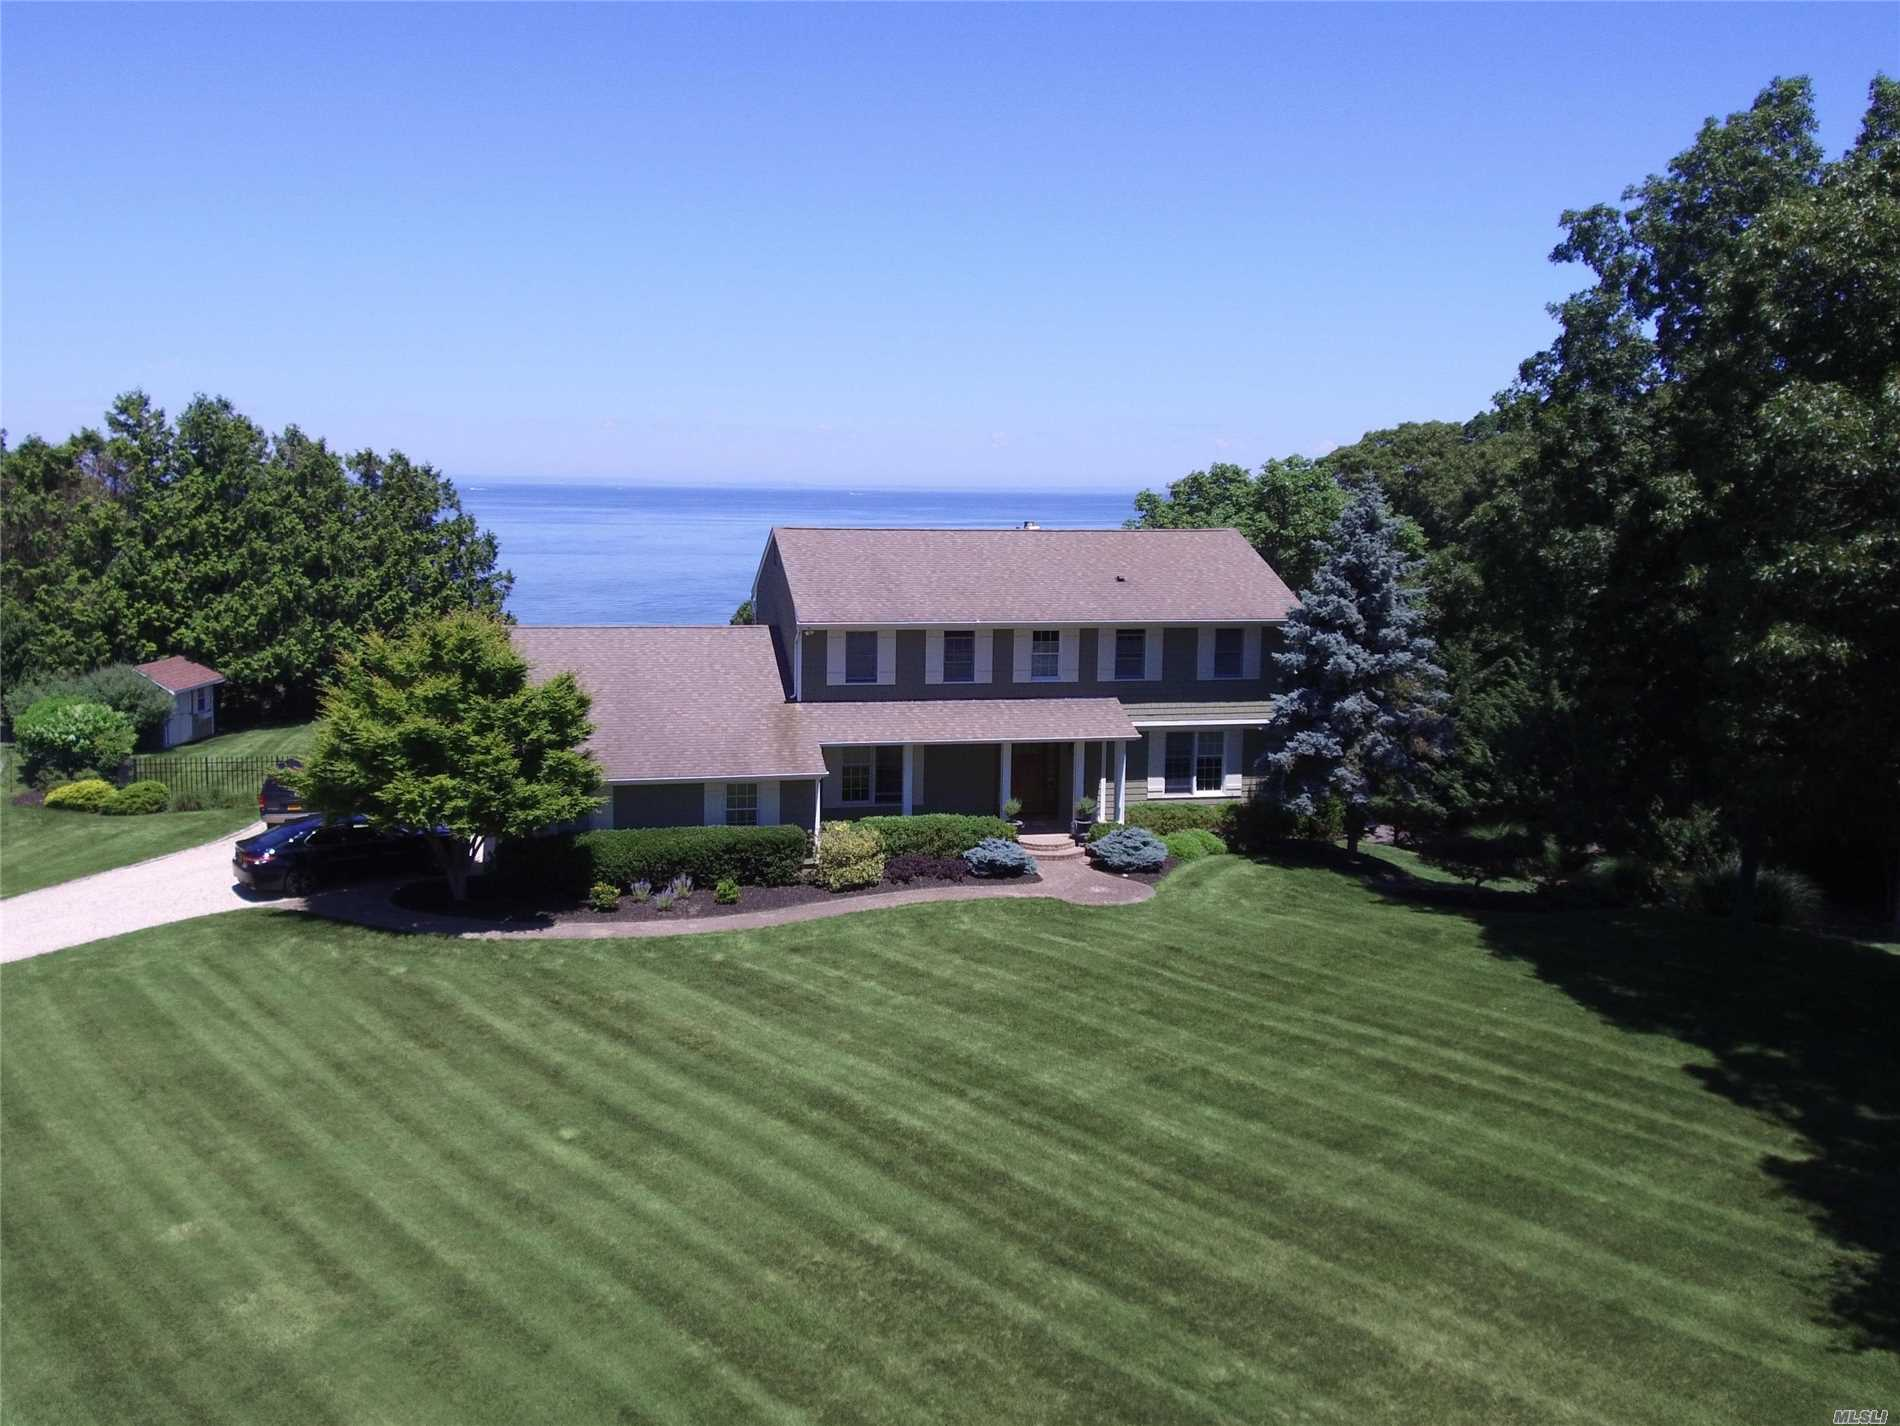 Stunning Waterfront 4 Bedroom 3 1/2 Bath Colonial On 1 Acre In Soundview Acres. Private Beach Association. Salt Water Inground Pool. Mahogany Deck, Patio Pavers, Full Finished Basement With Shower And Outside Entrance. California Closet In Master, Gas Fireplace In Den, Hardwood Floors. Beautiful Water View From Every Room.